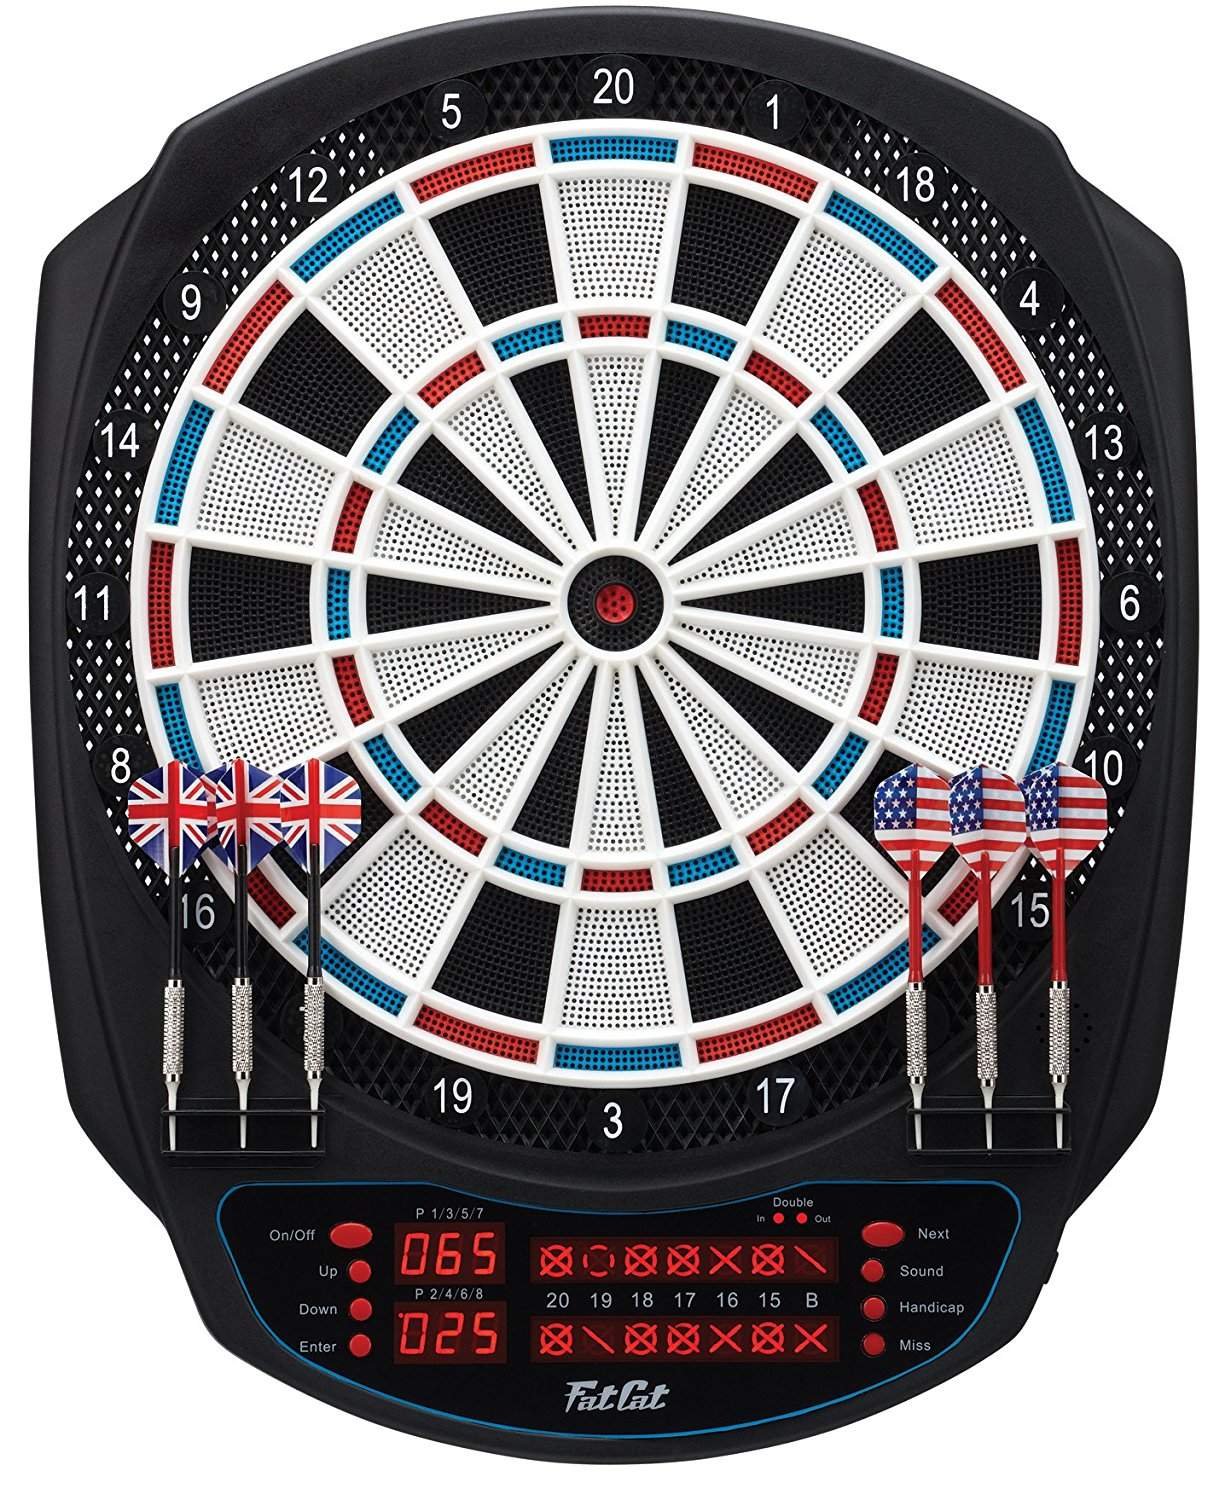 electronic dart boards for sale